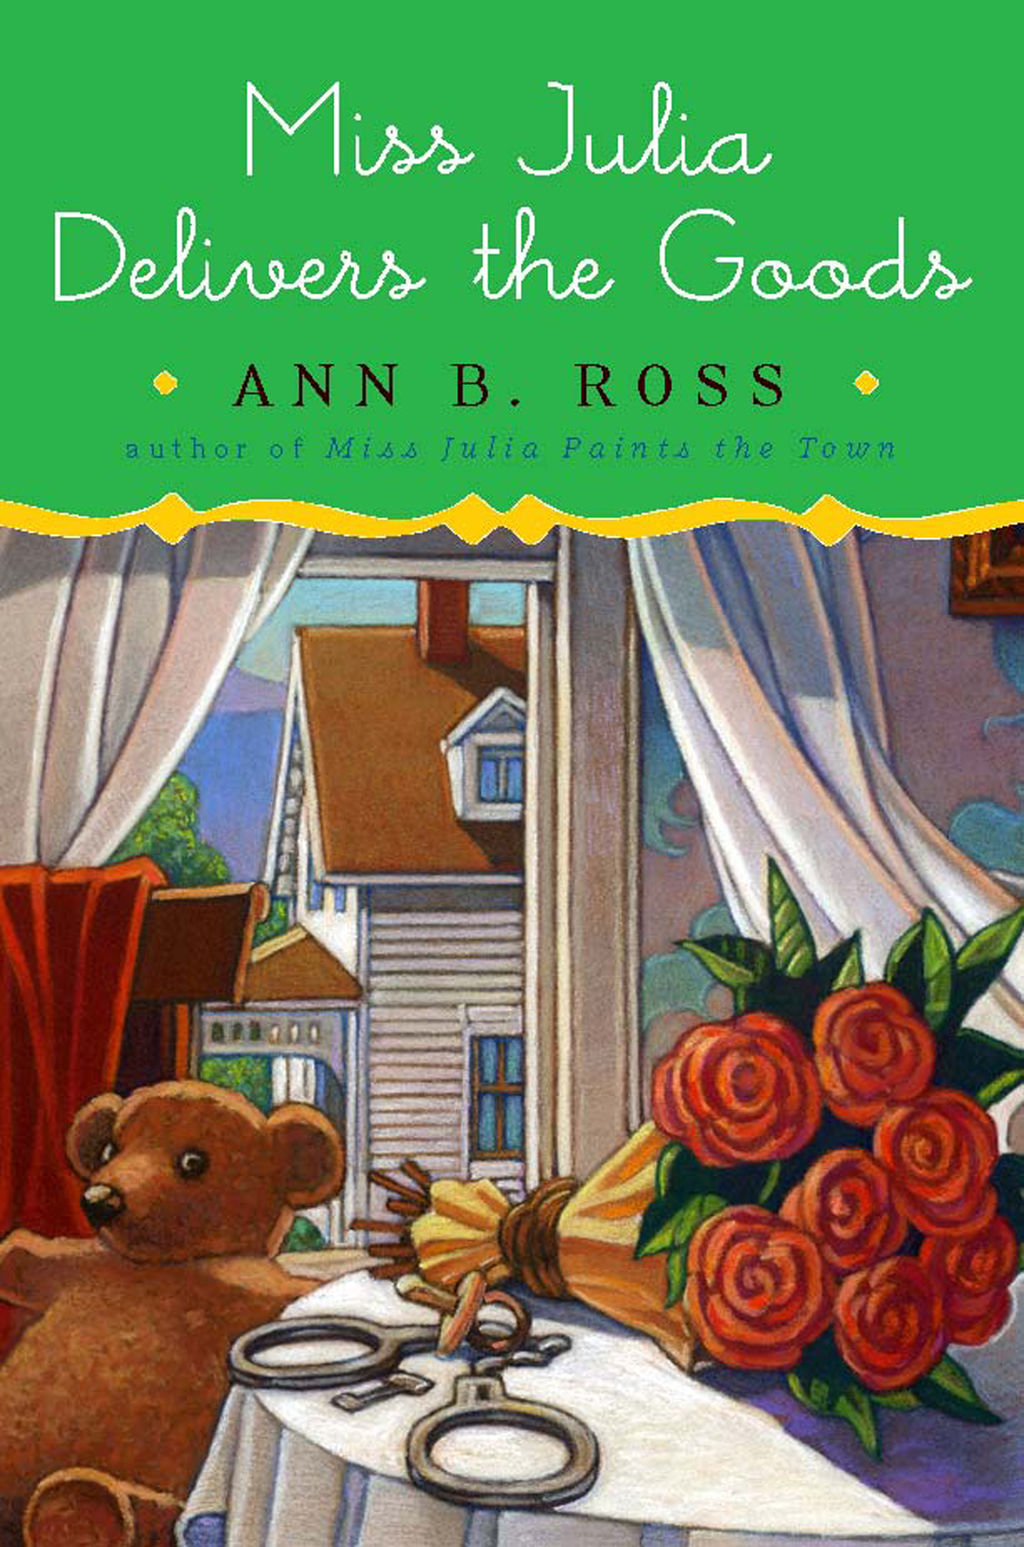 Miss Julia Delivers the Goods By: Ann B. Ross